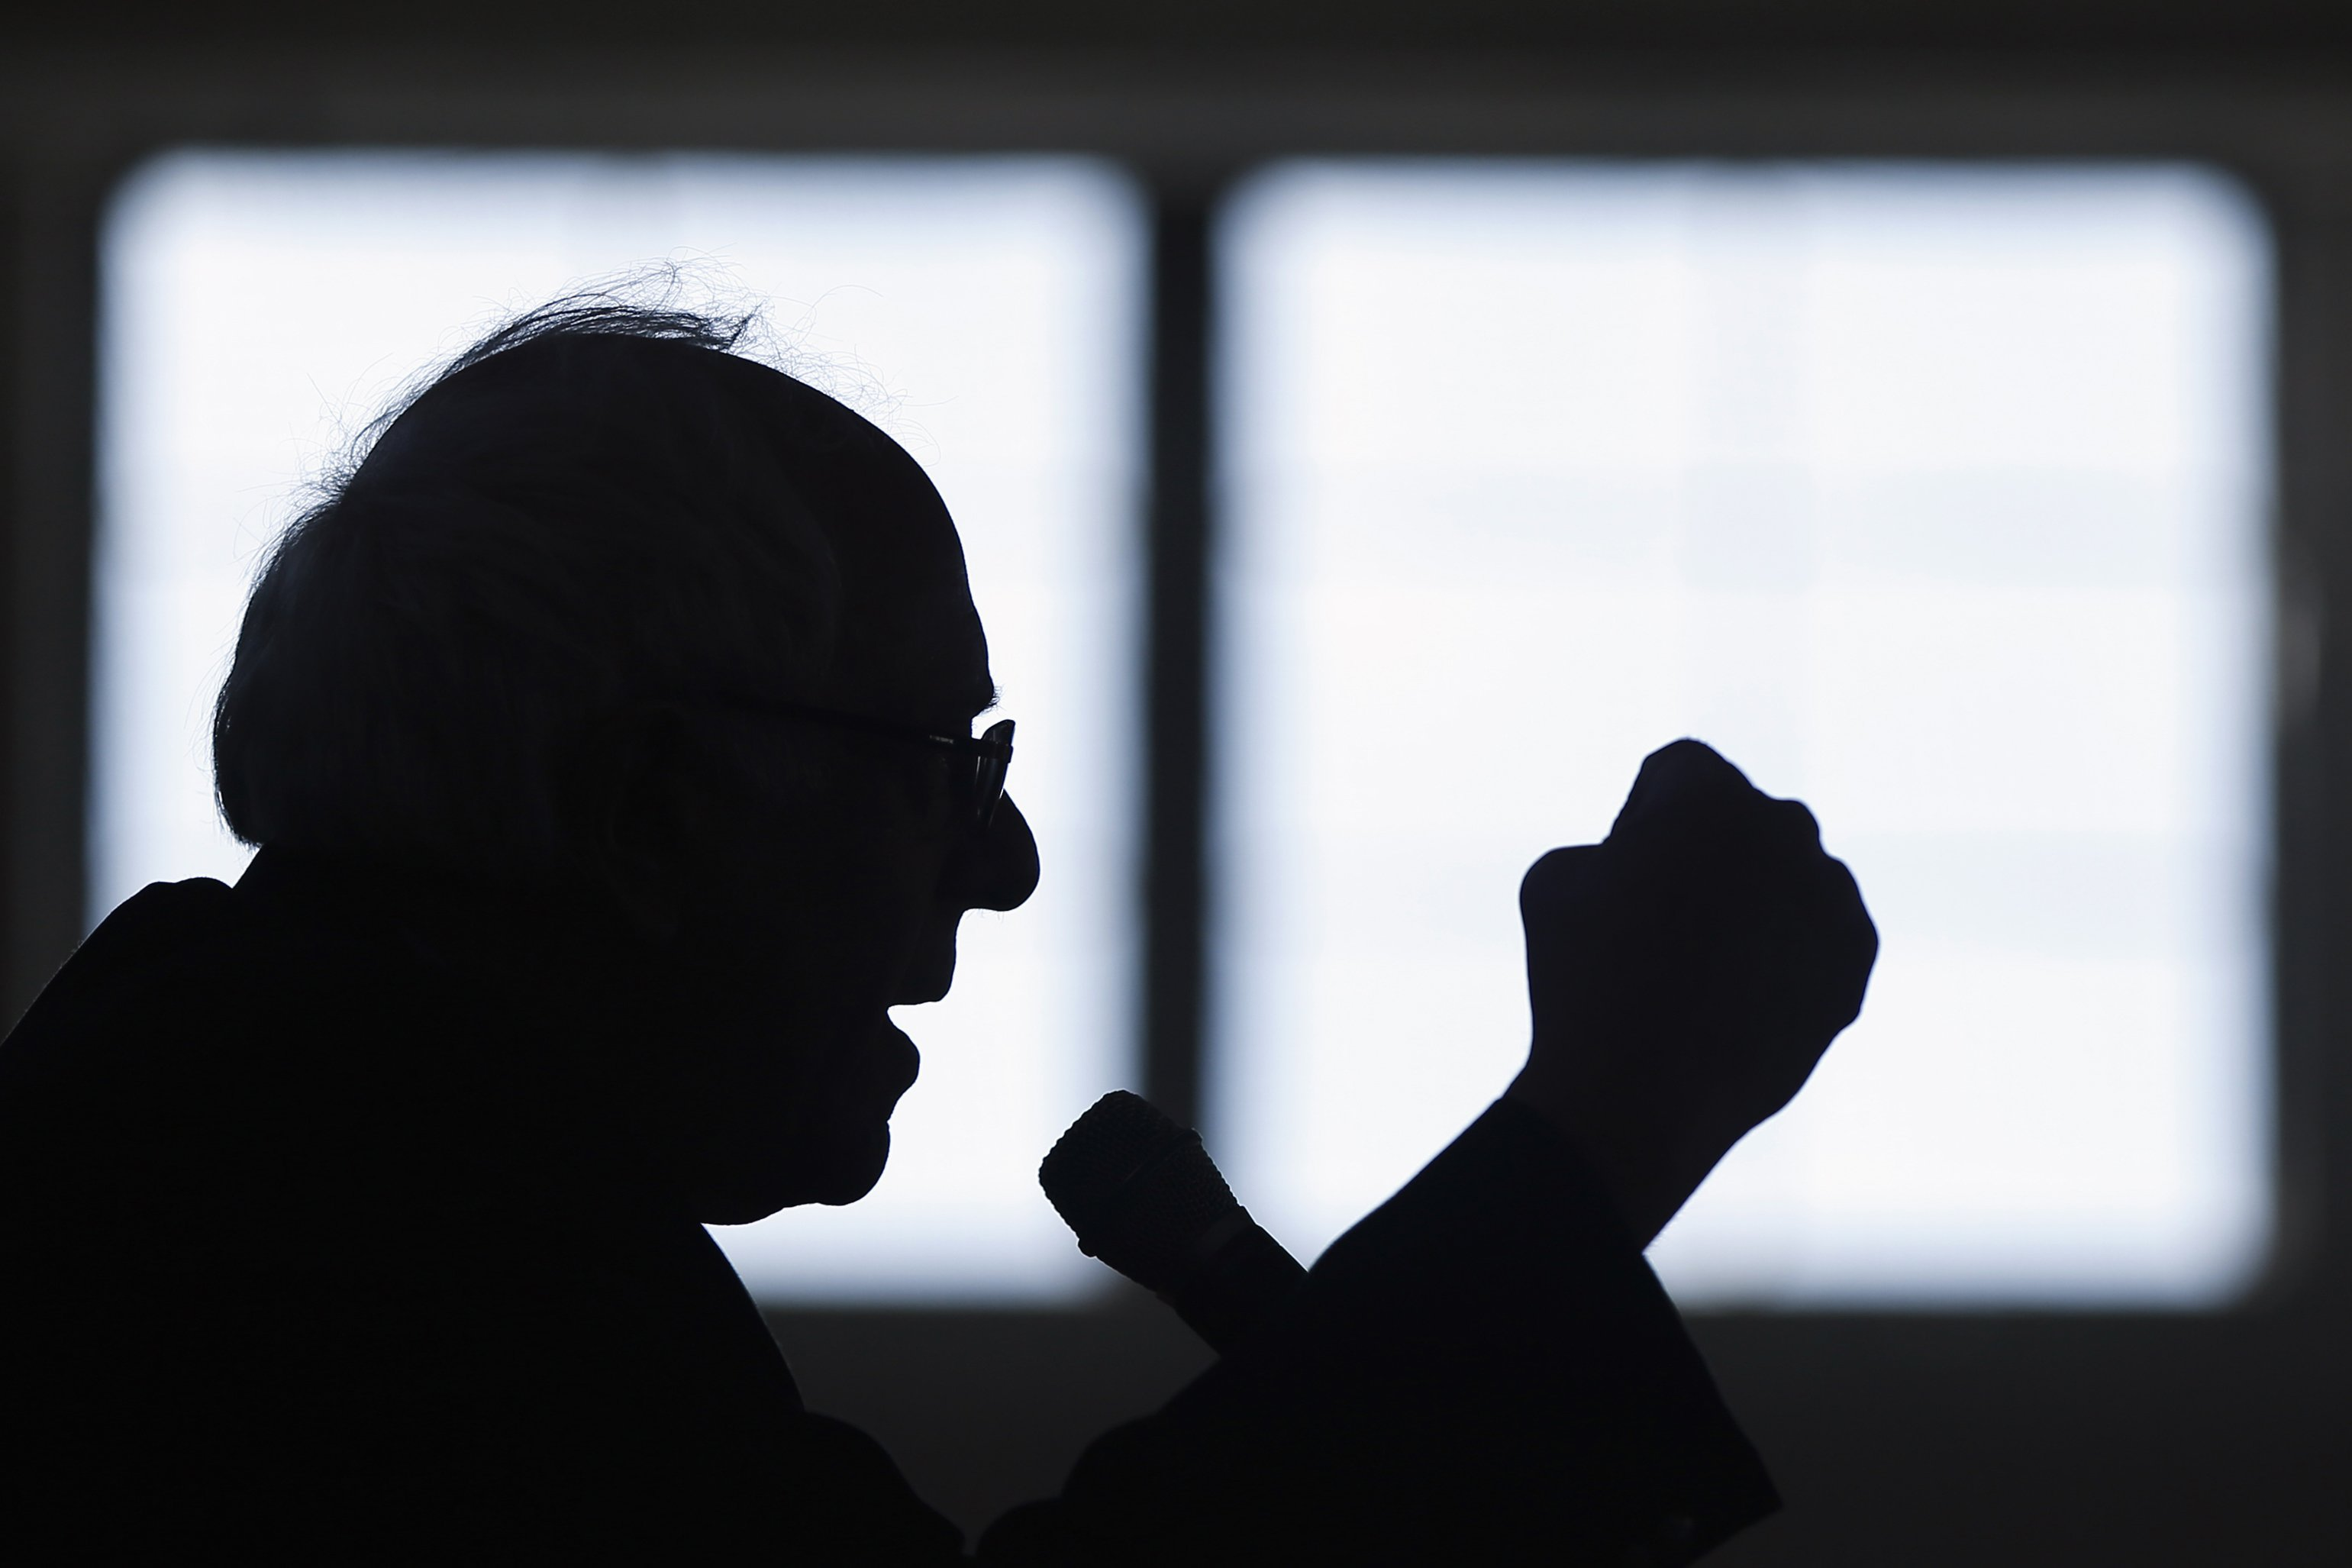 Bernie Sanders speaks during a campaign stop in Peterborough, NH on Jan. 21, 2016.